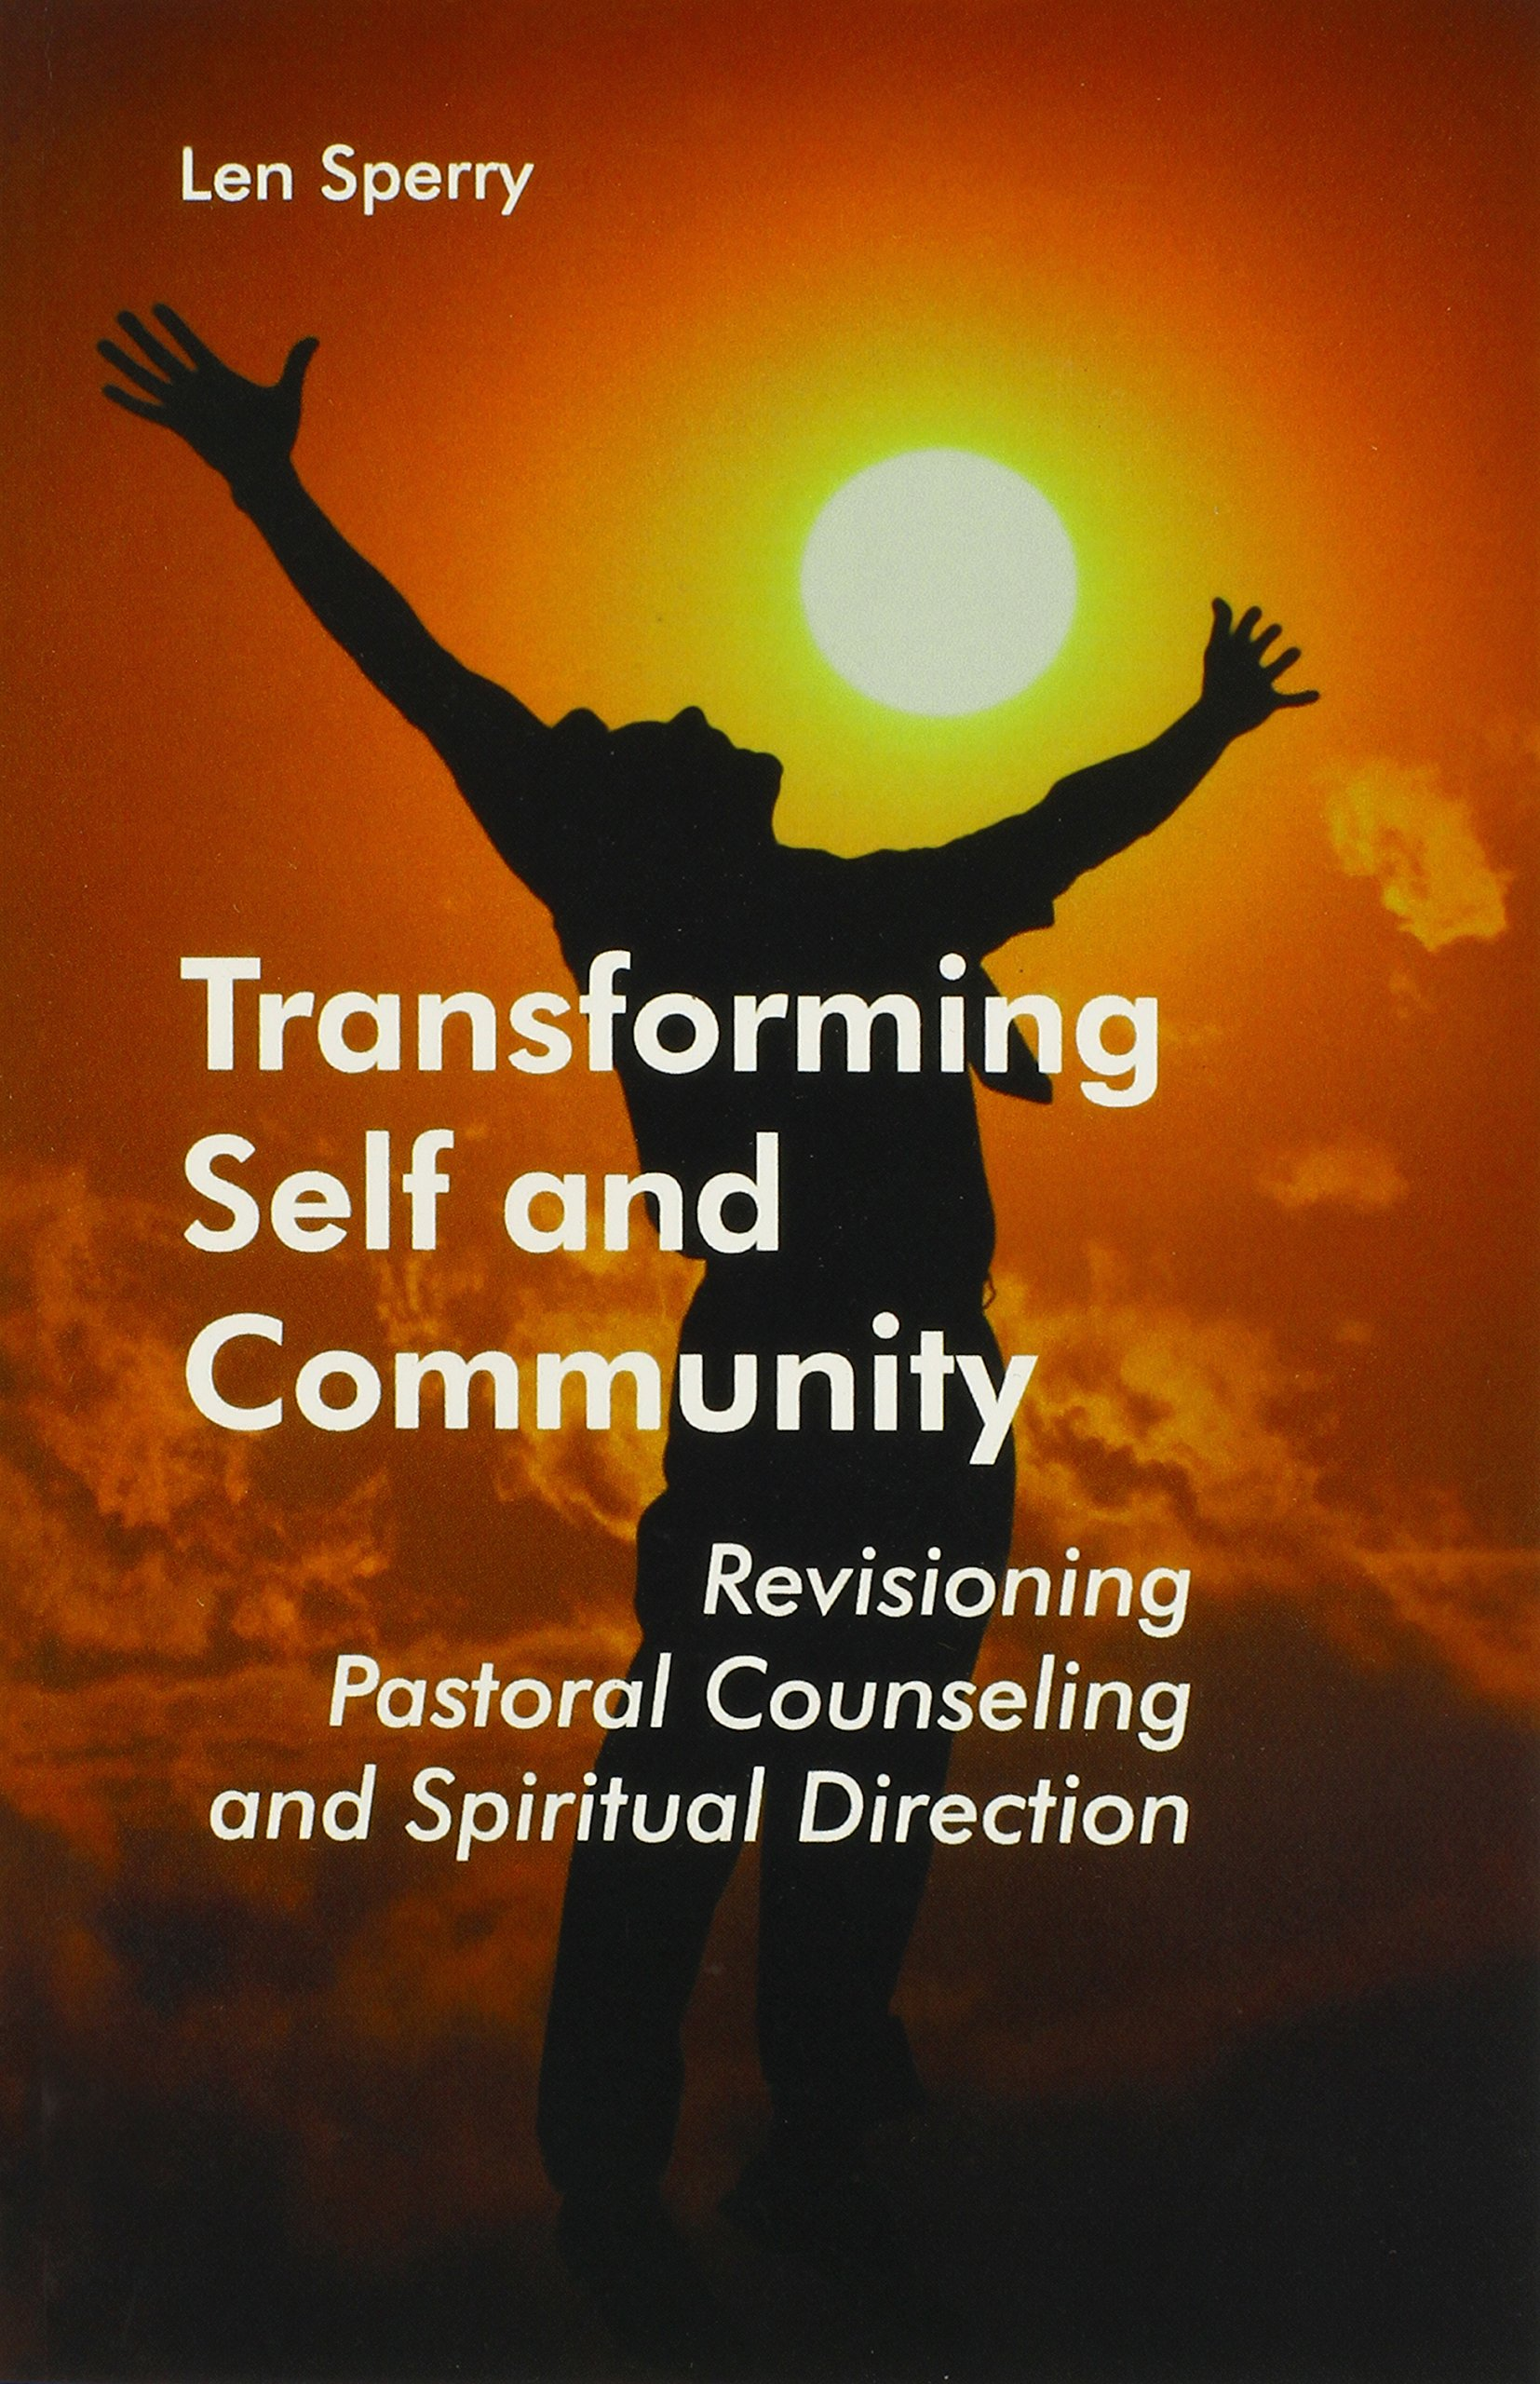 Transforming Self And Community: Revisioning Pastoral Counseling and Spiritual Direction PDF